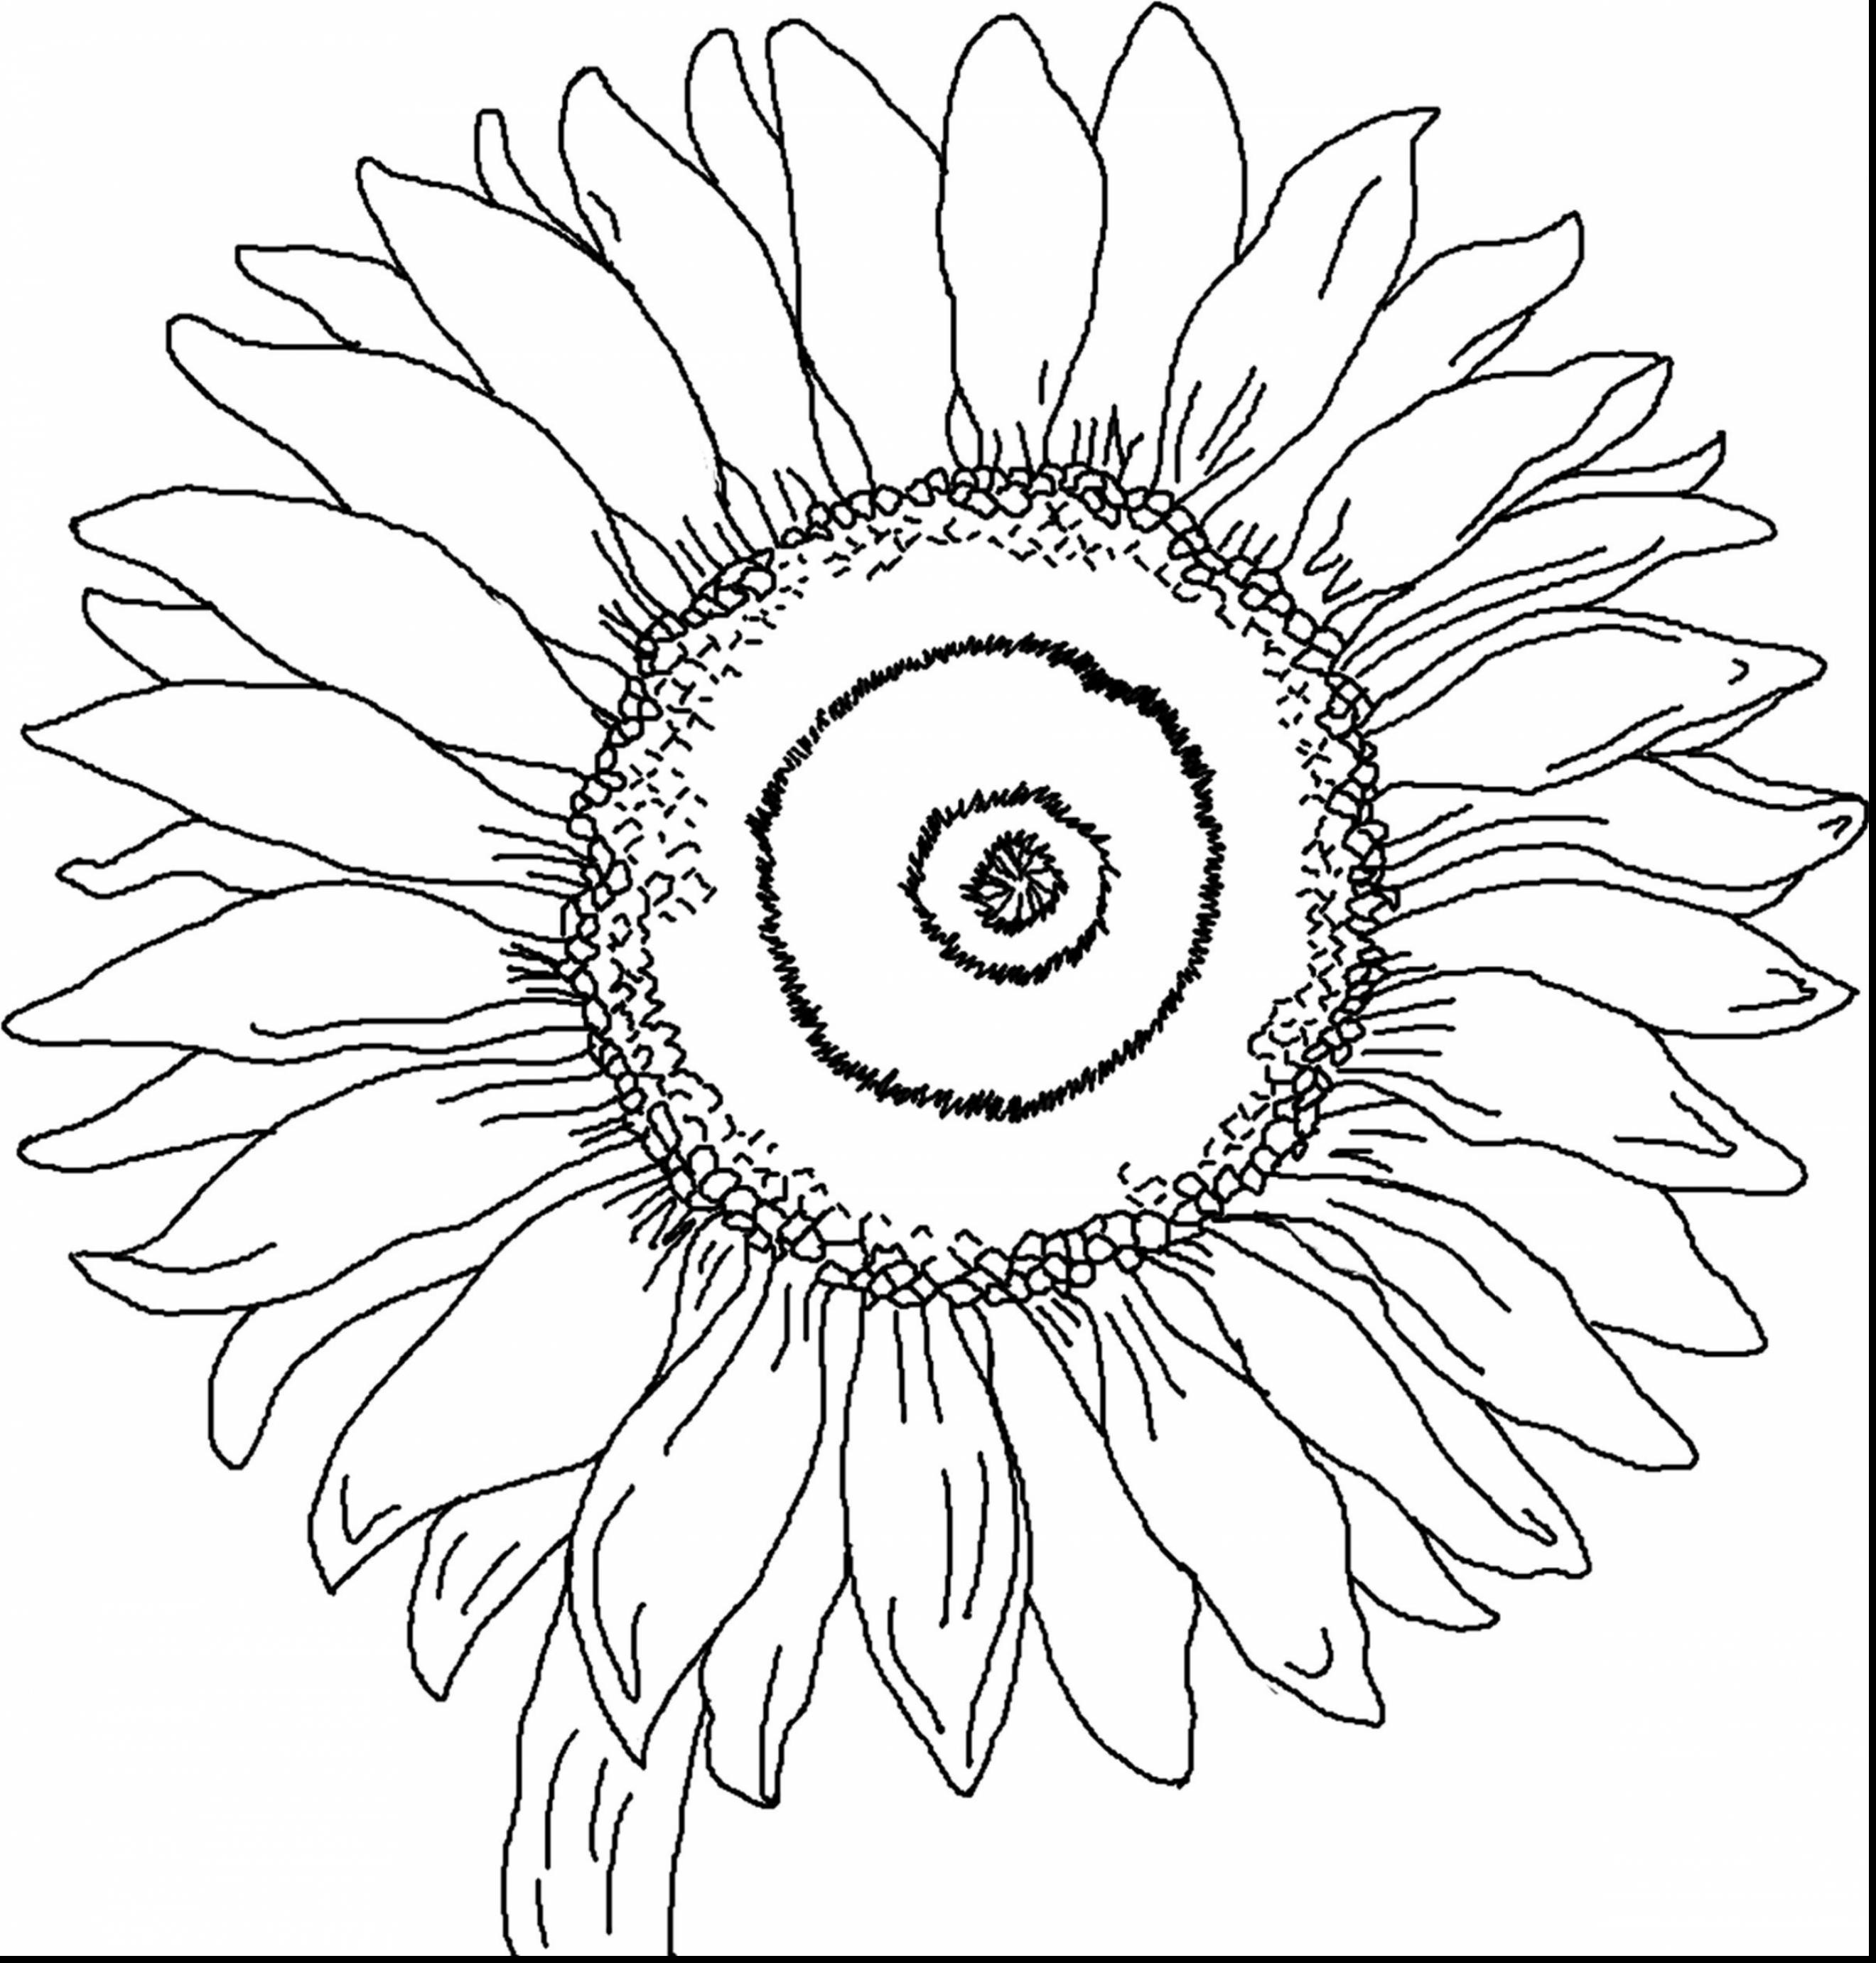 Van gogh sunflowers coloring page